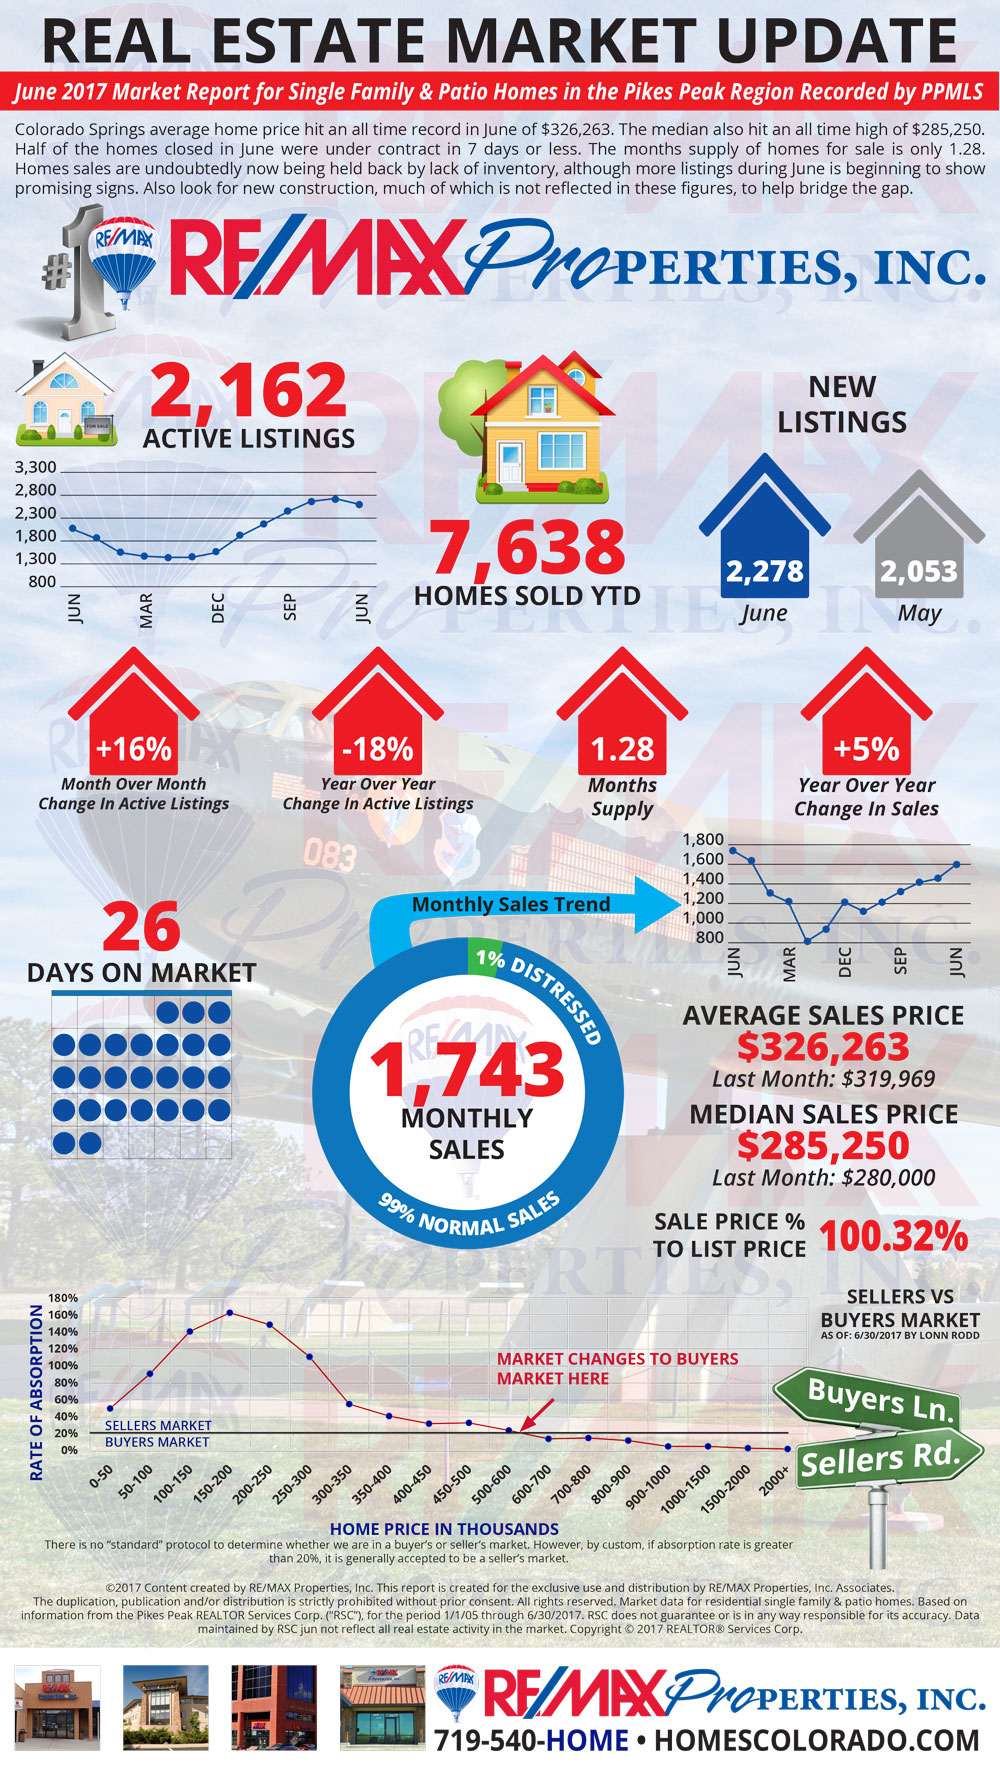 June 2017 Market Update - Colorado Springs Real Estate